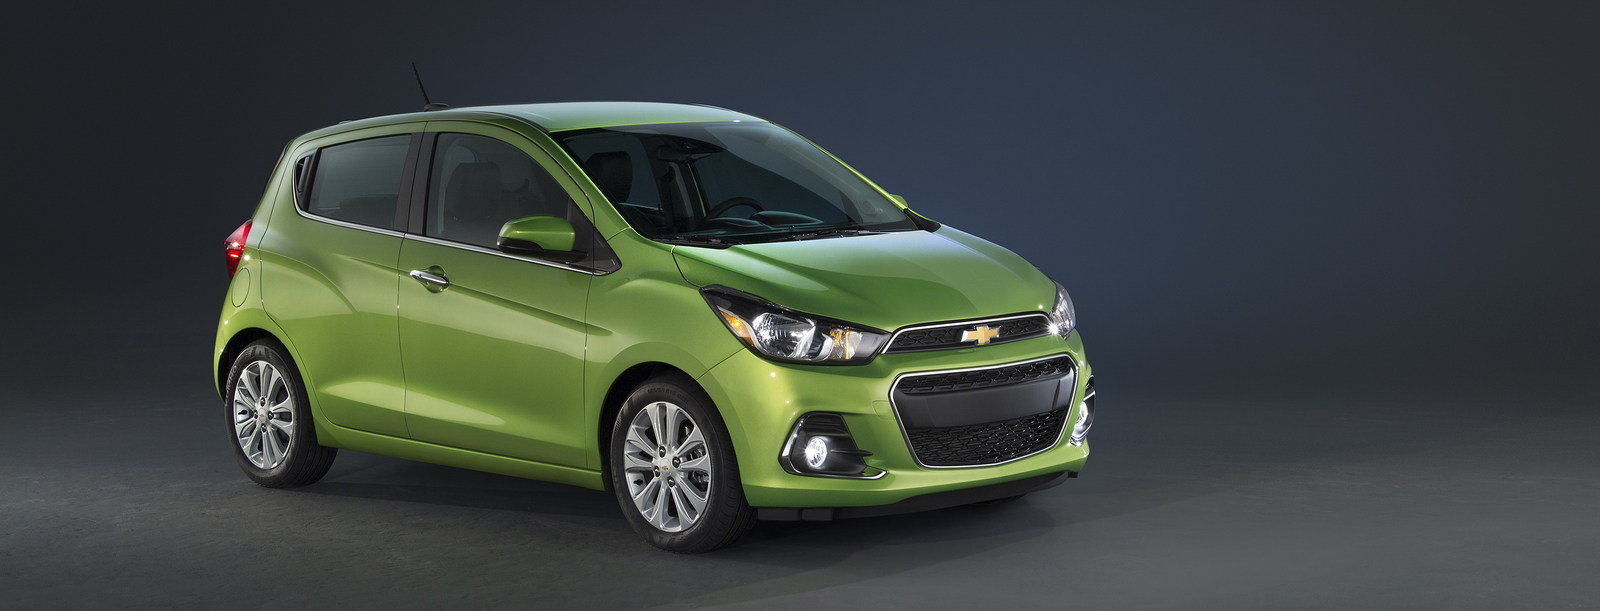 2016 chevrolet spark picture 625060 car review top speed. Black Bedroom Furniture Sets. Home Design Ideas